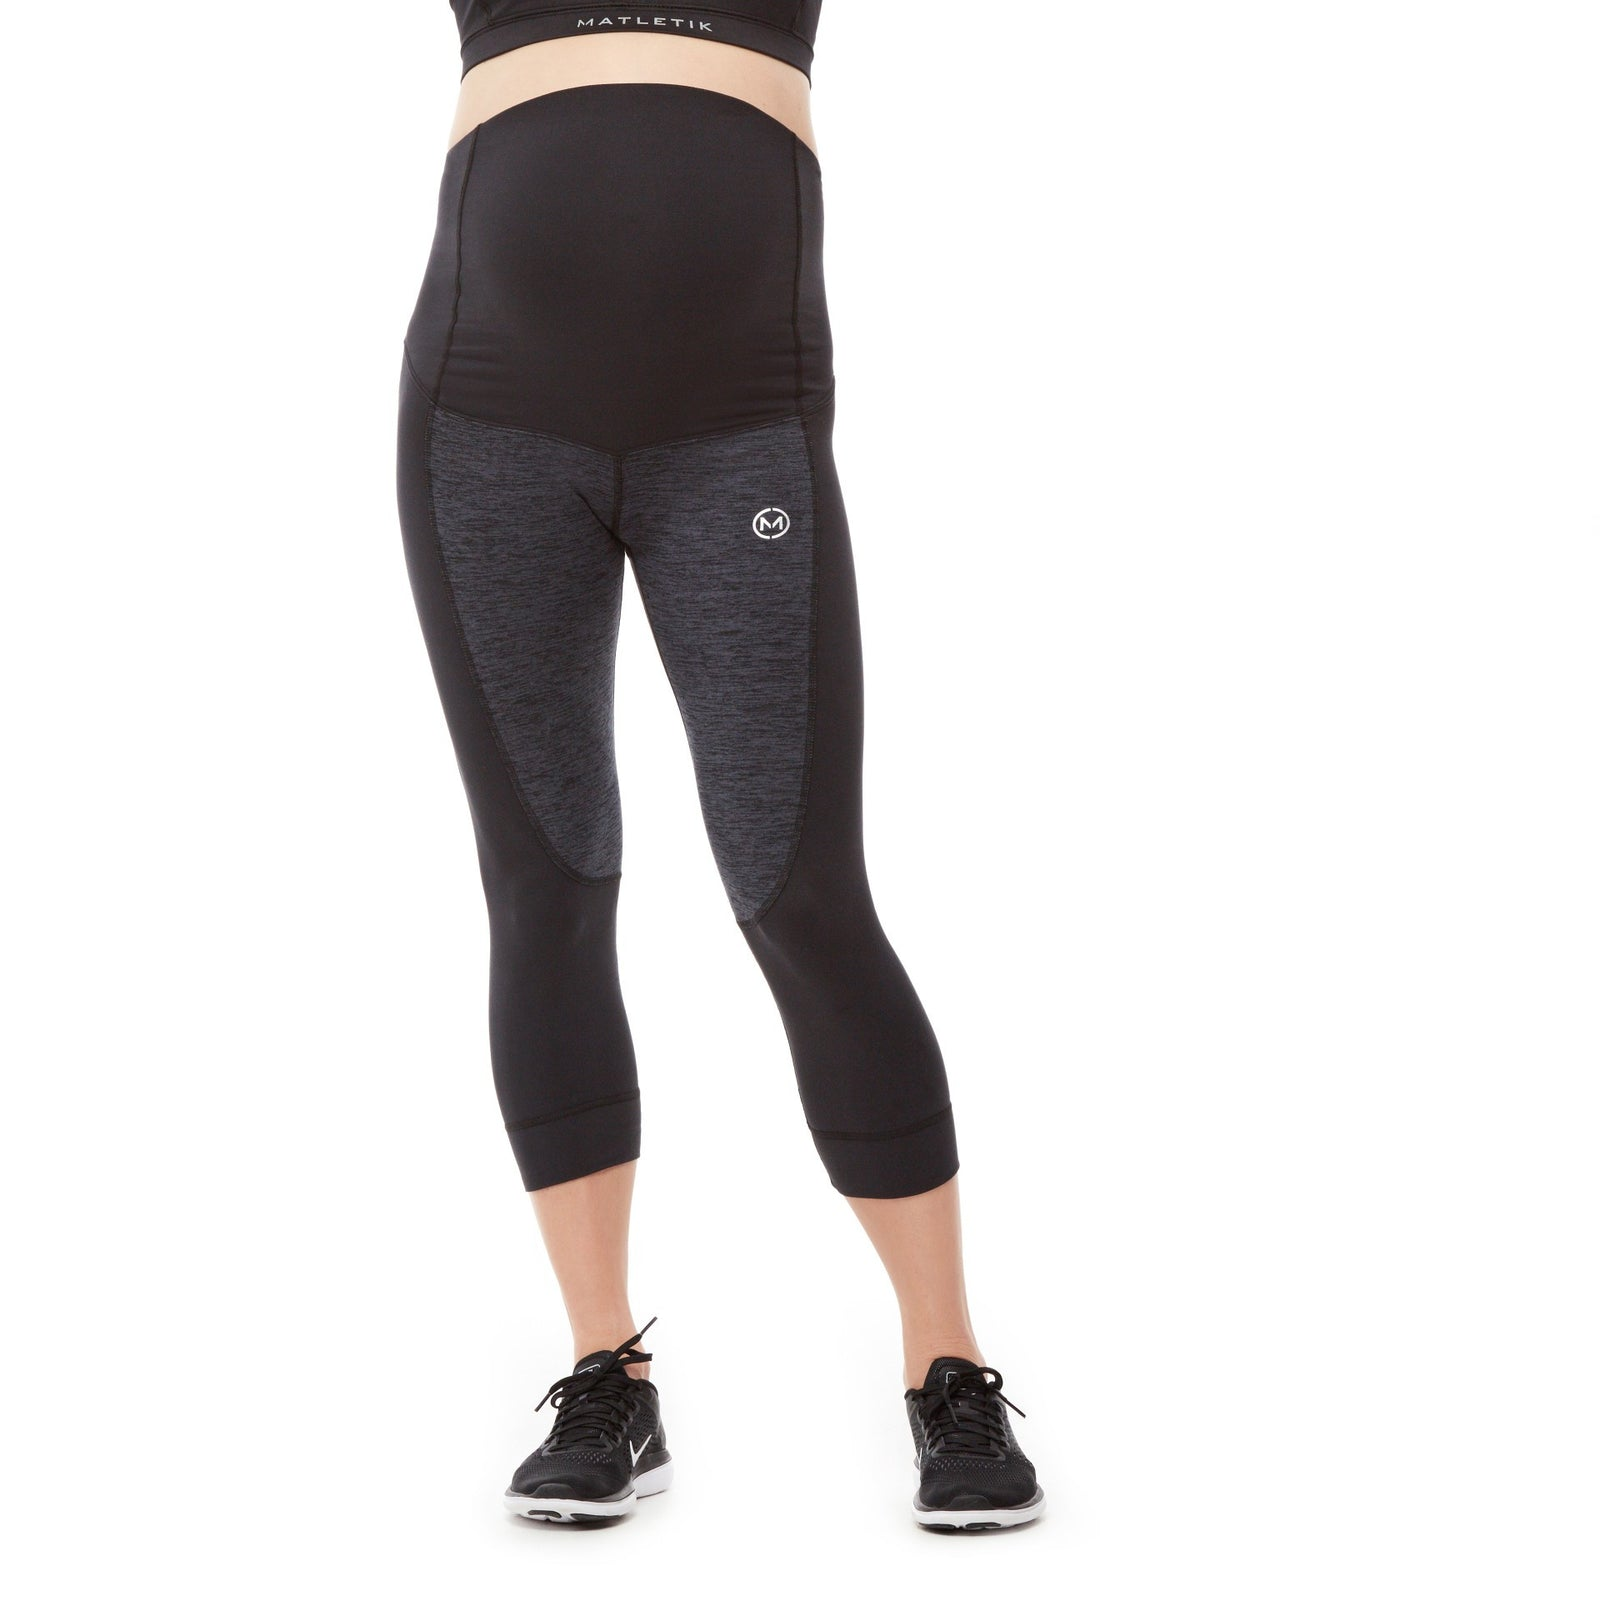 FLEX LEGGING - Active 7/8 with fold over panel